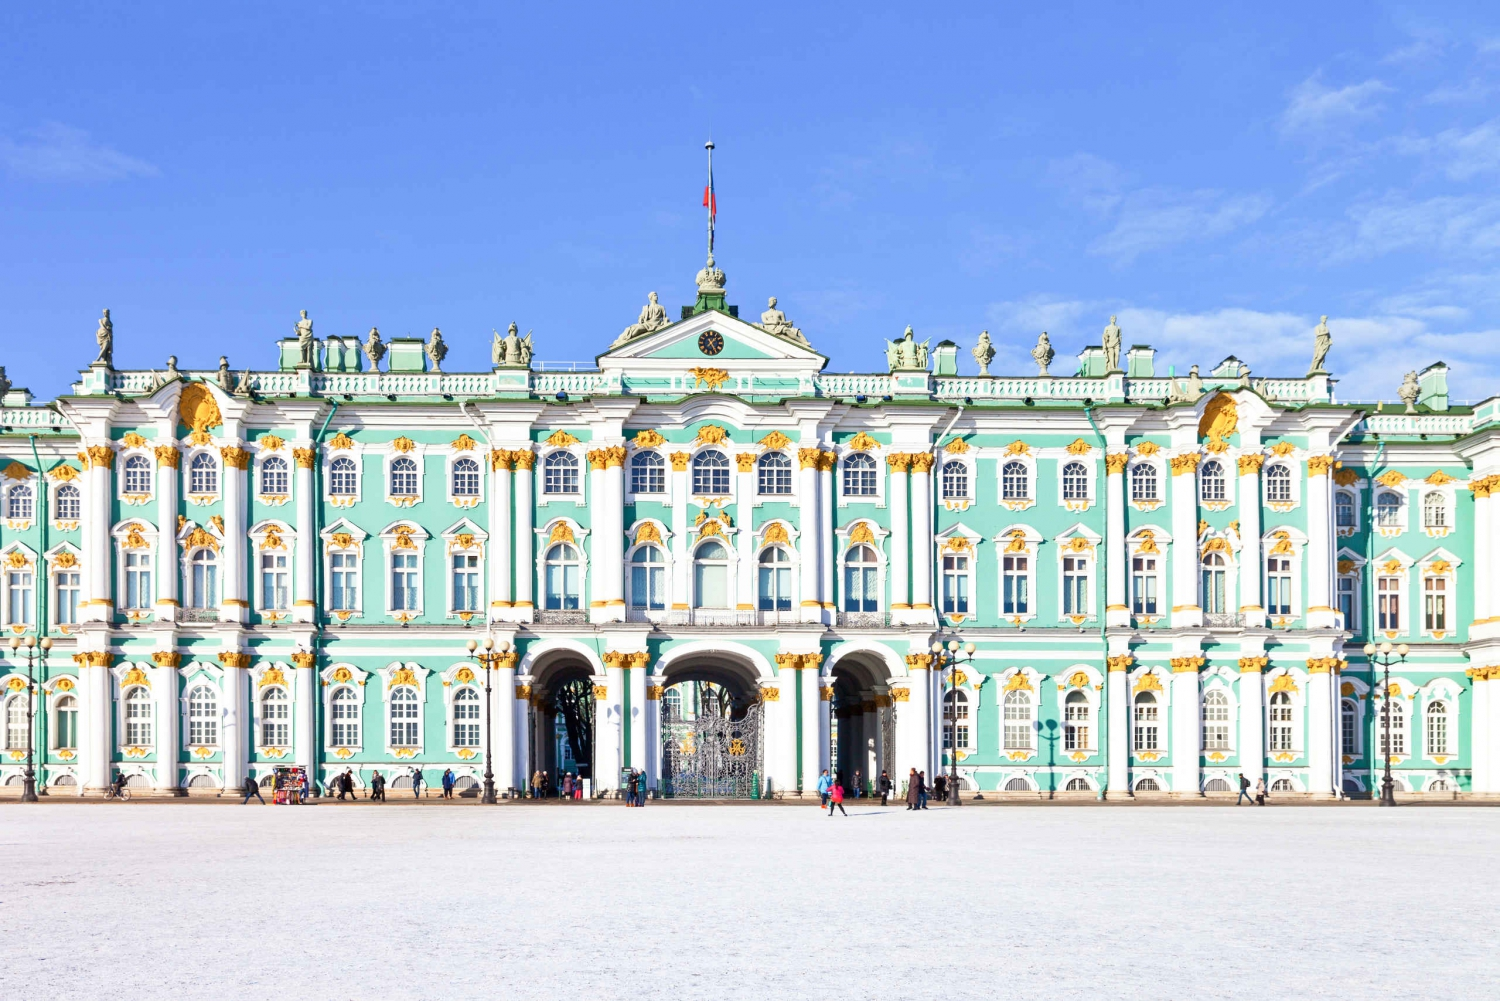 St. Petersburg: Hermitage Museum Private Tour with Pickup